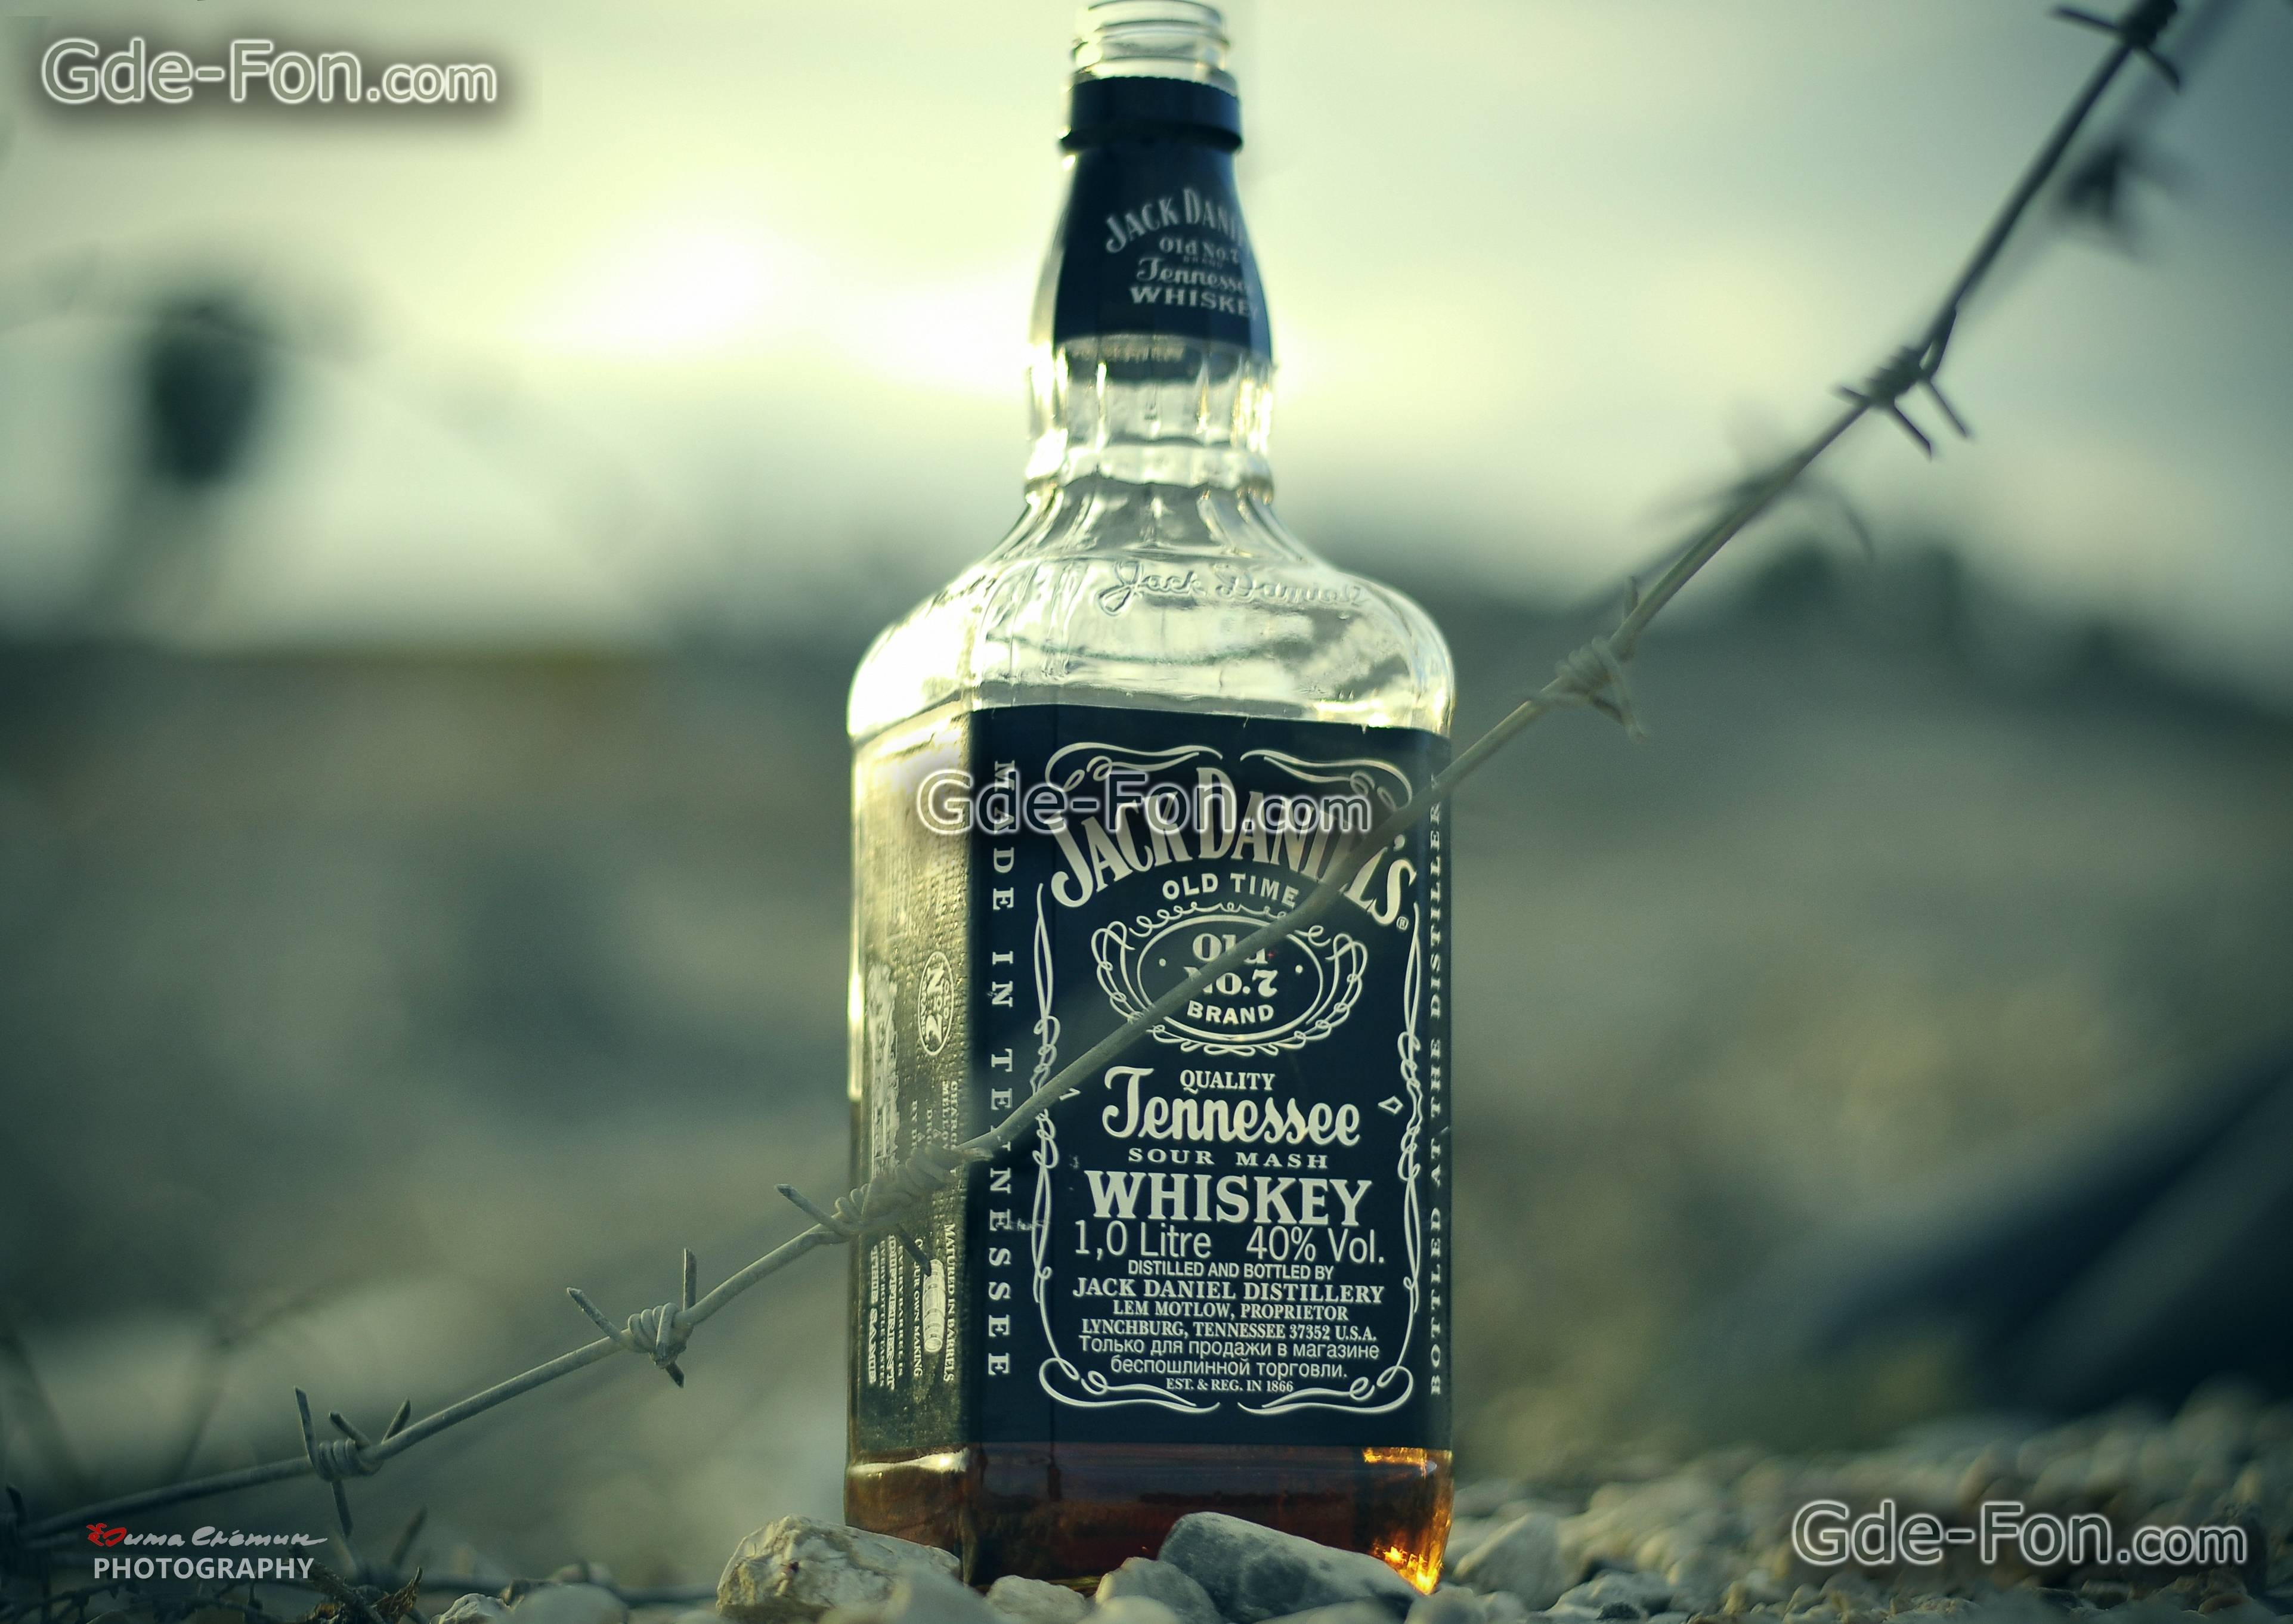 Download wallpapers jack daniels, whiskey, barbed wire, desert free